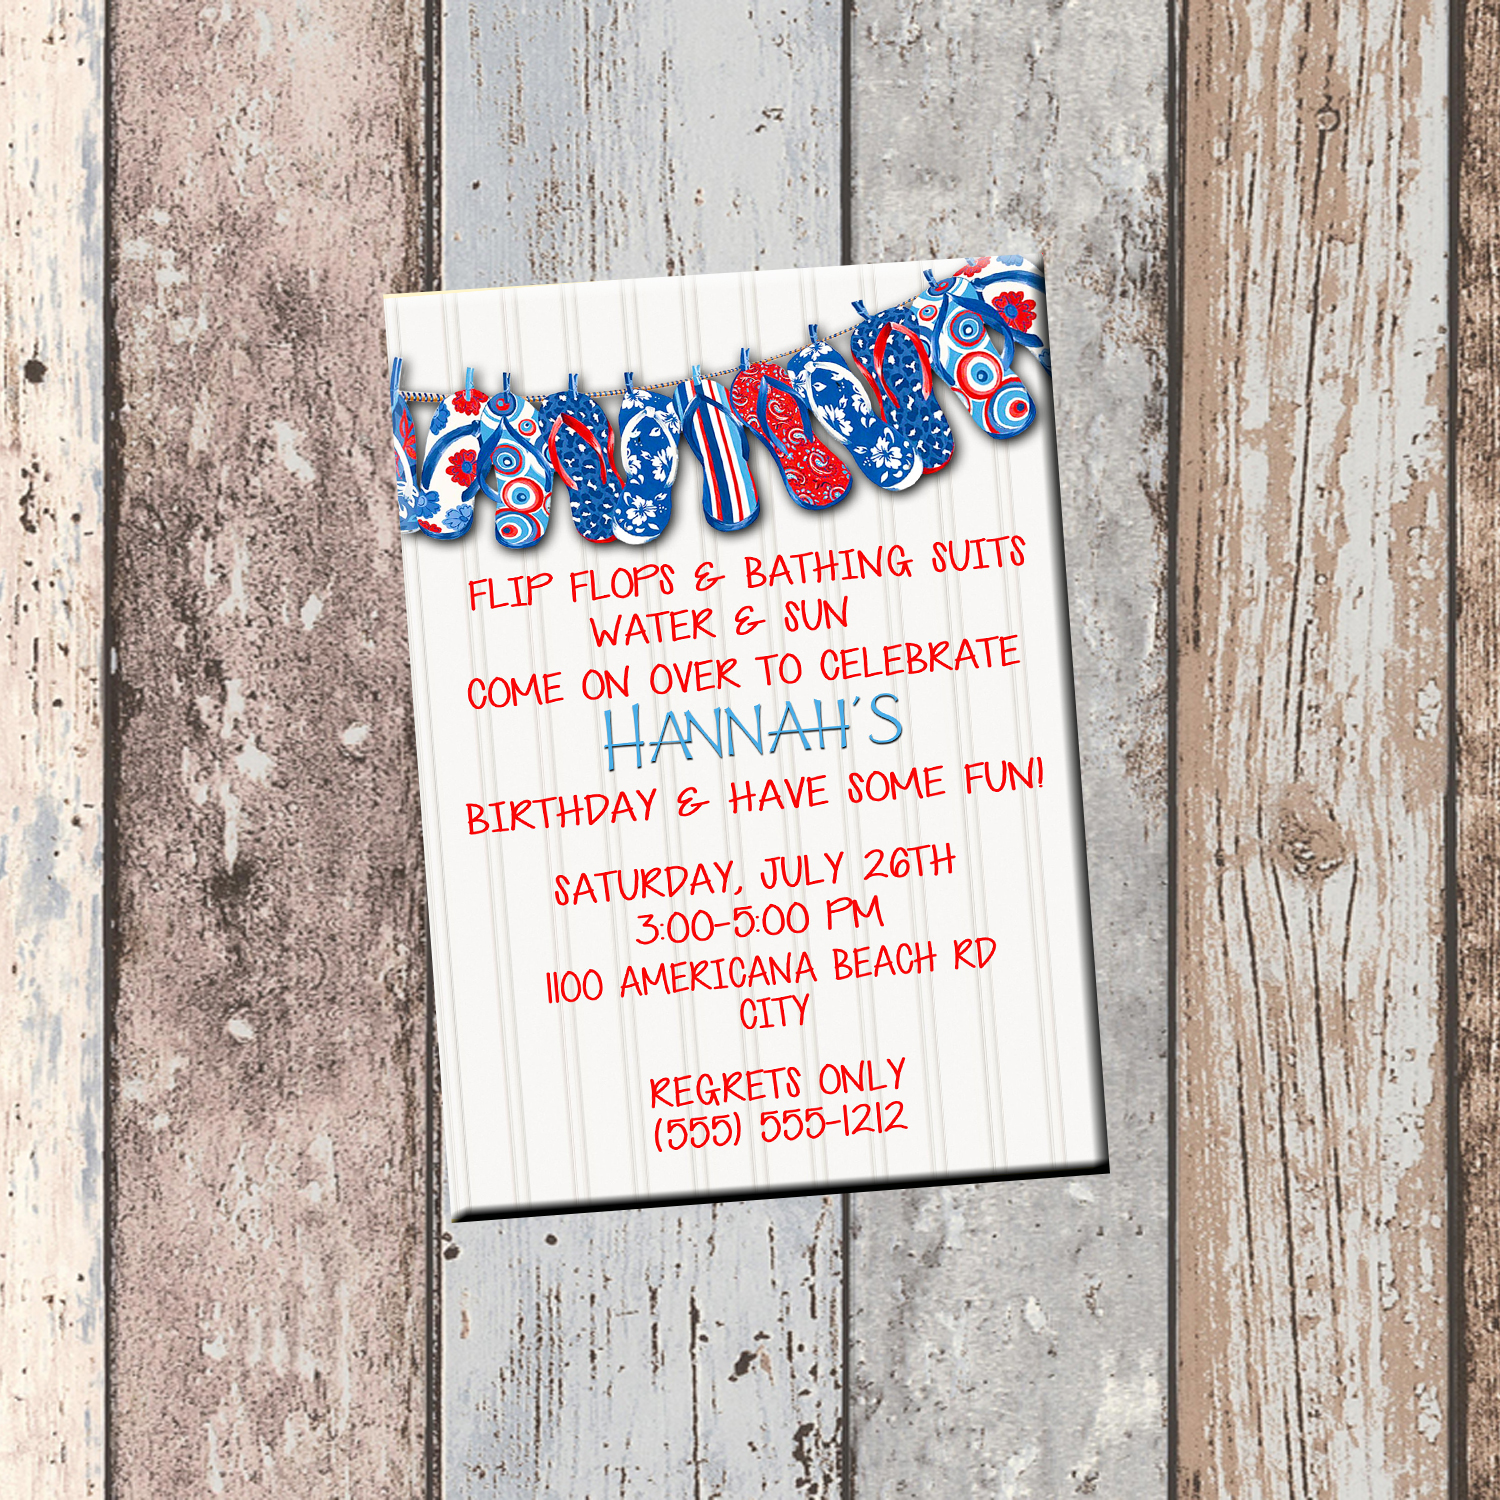 red white blue flip flop personalized birthday invitation 1 sided